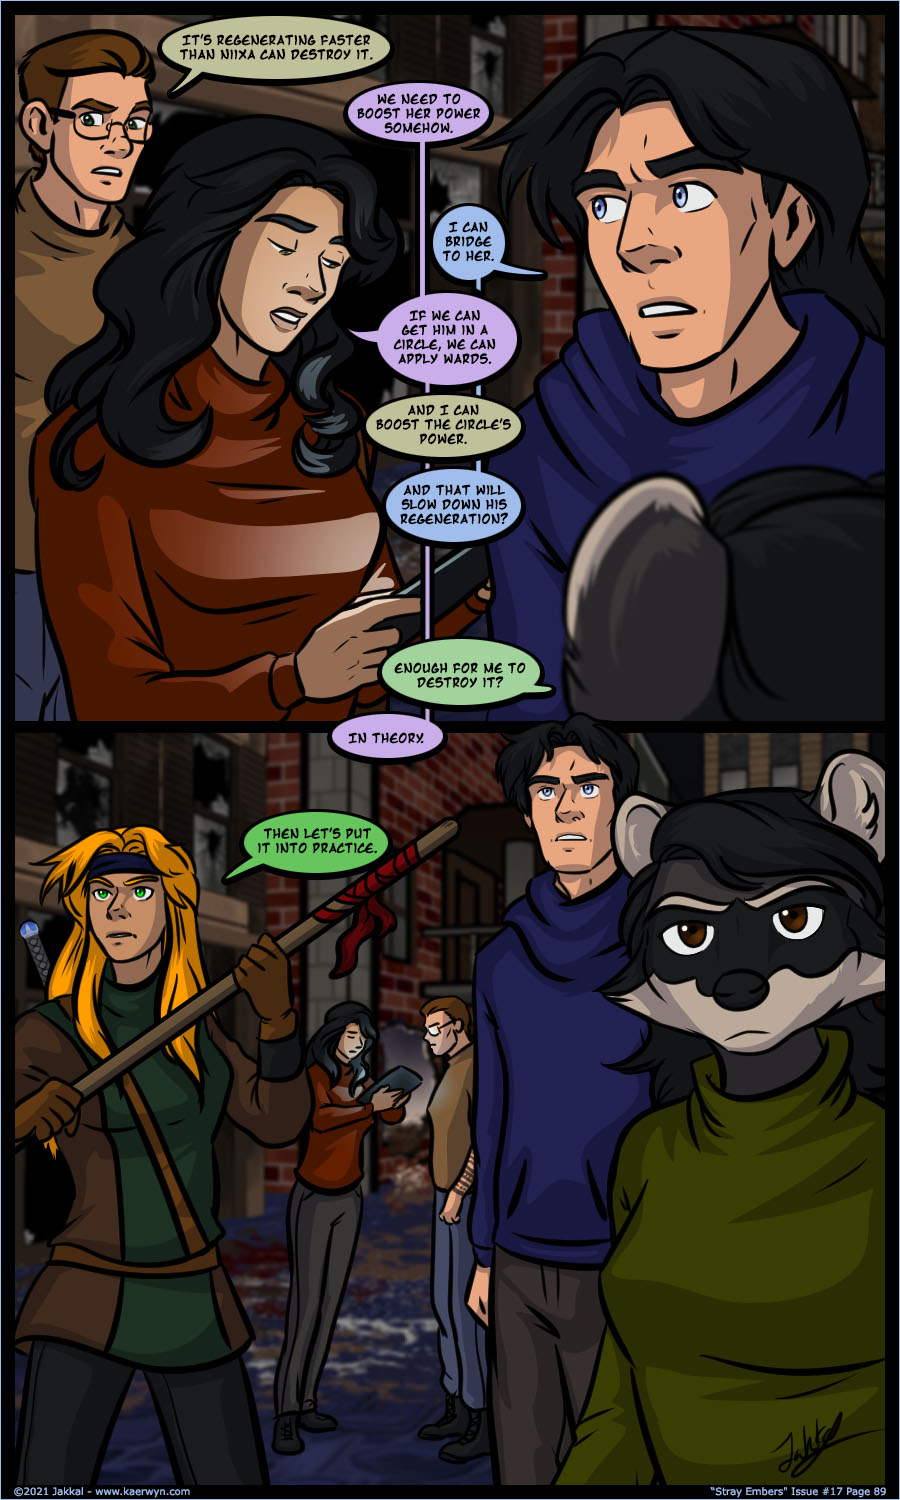 Issue 17 page 89